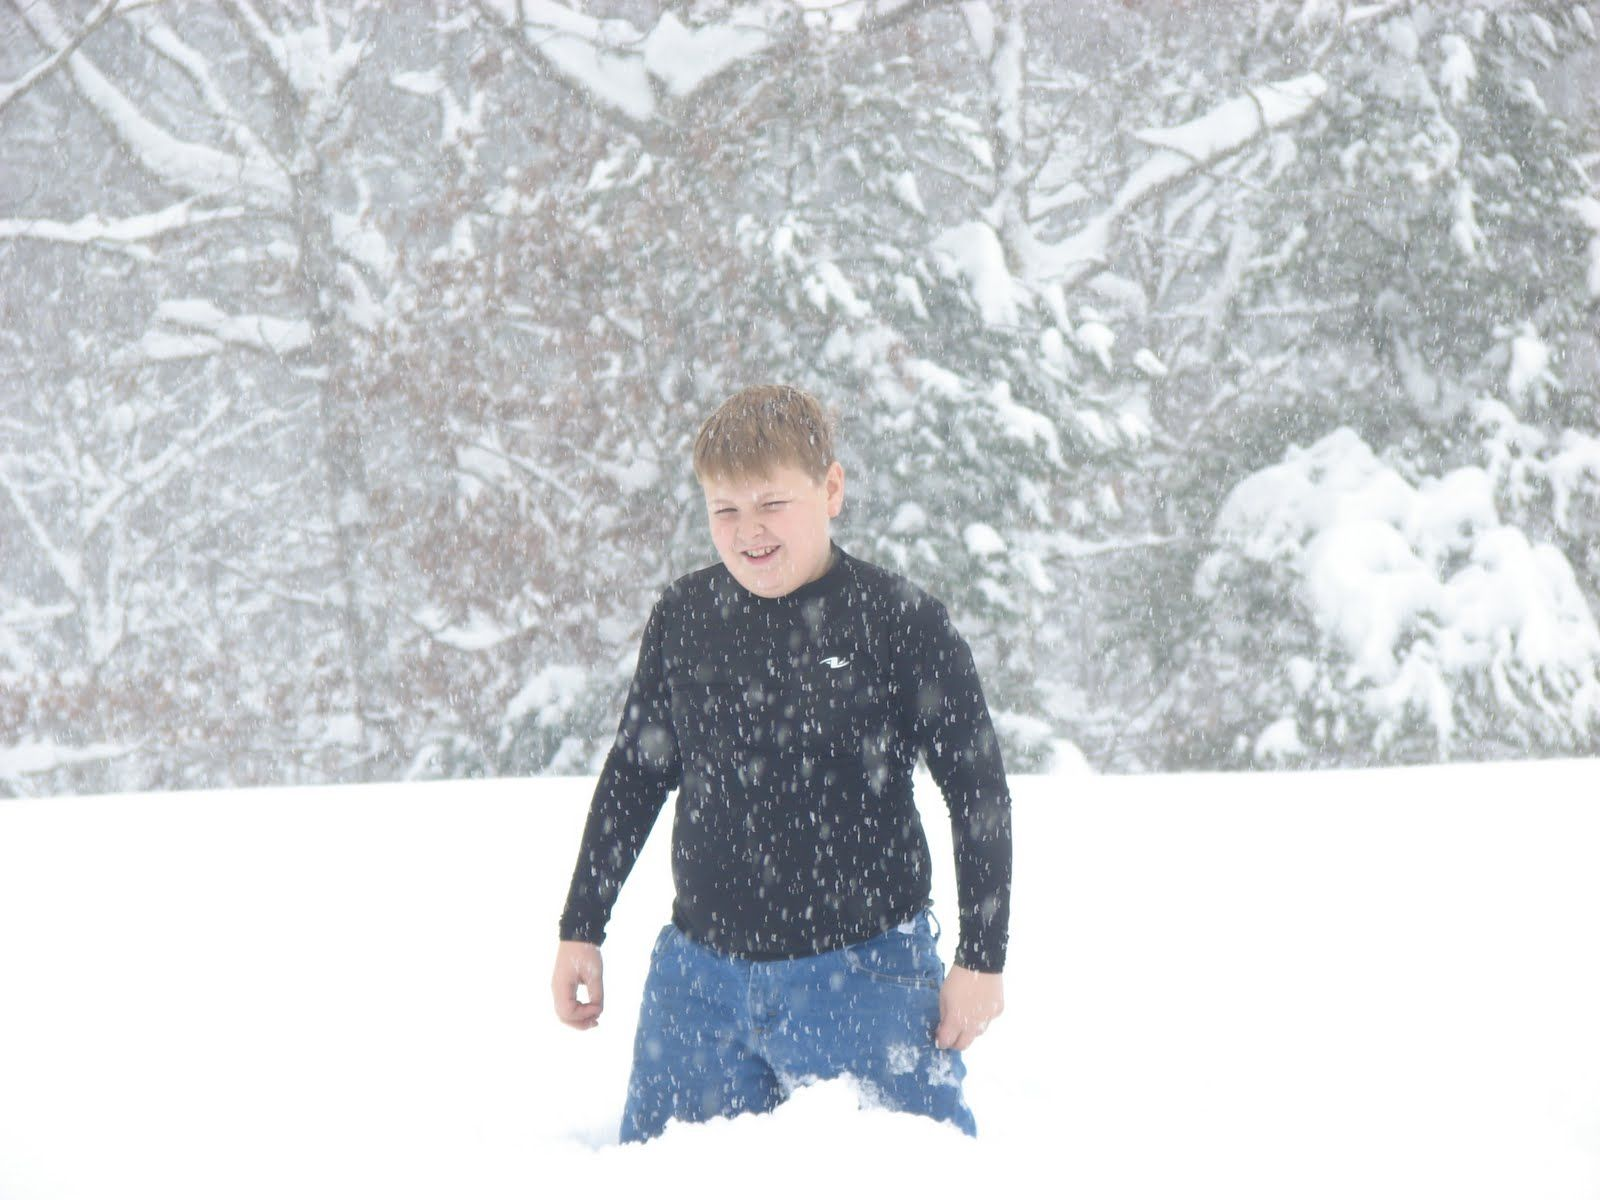 Snow up to the hips